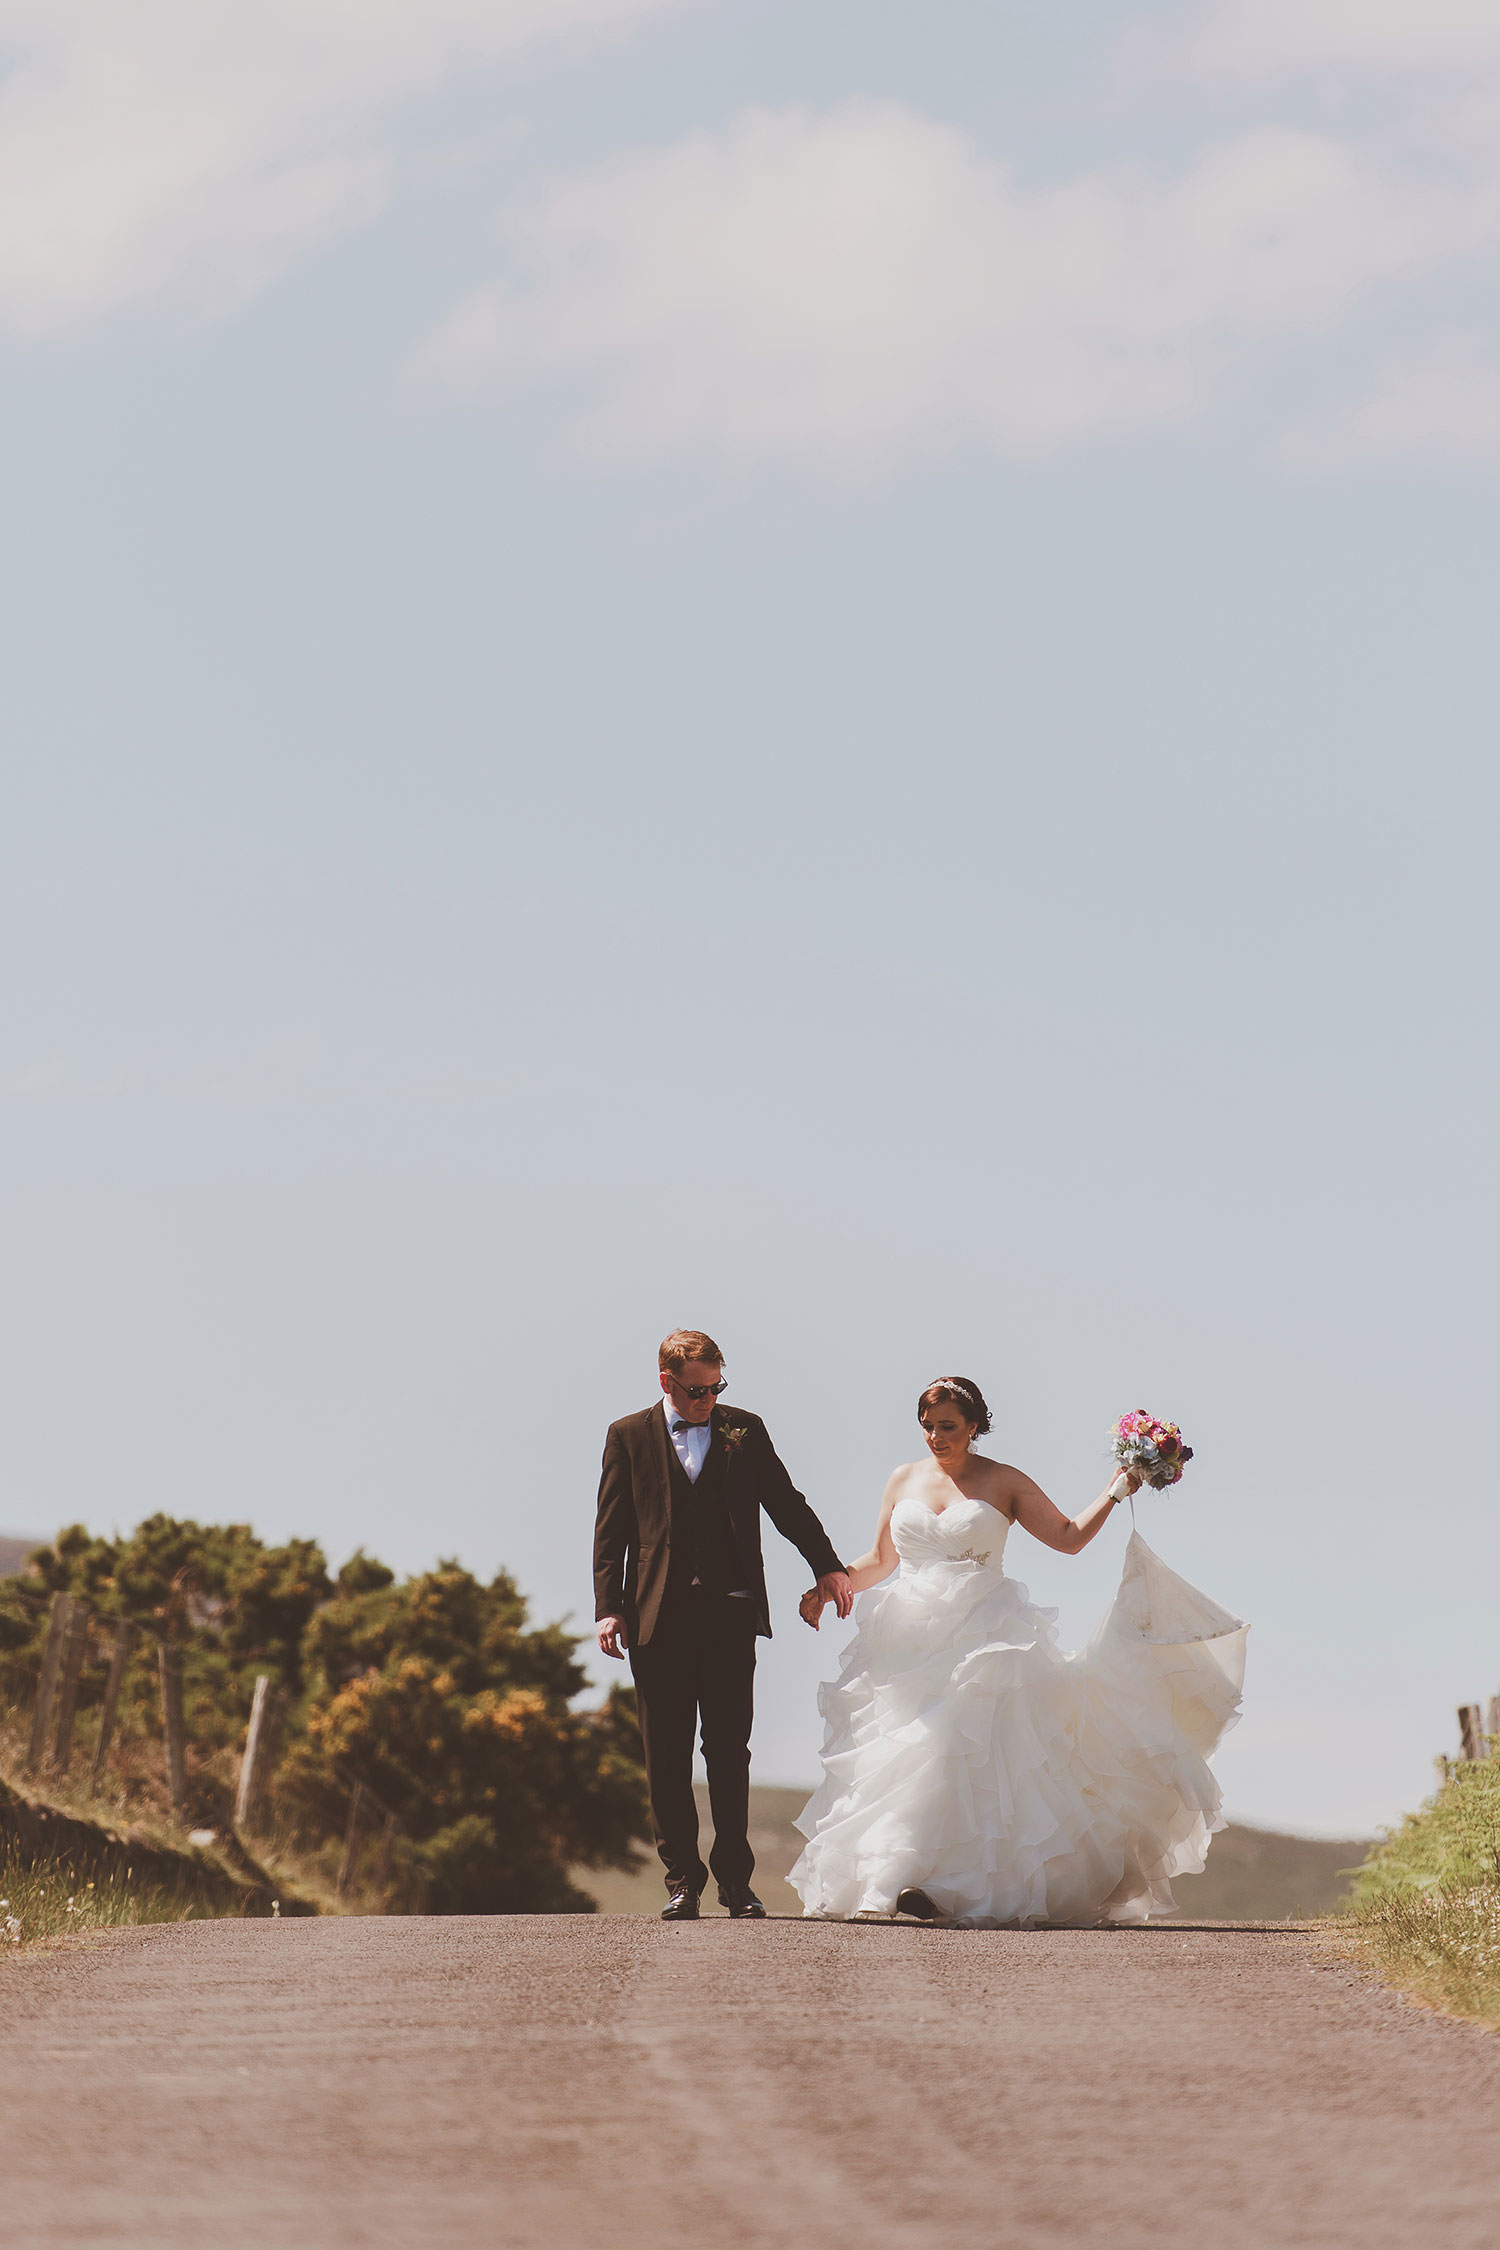 wedding-photographers-ireland-089.jpg